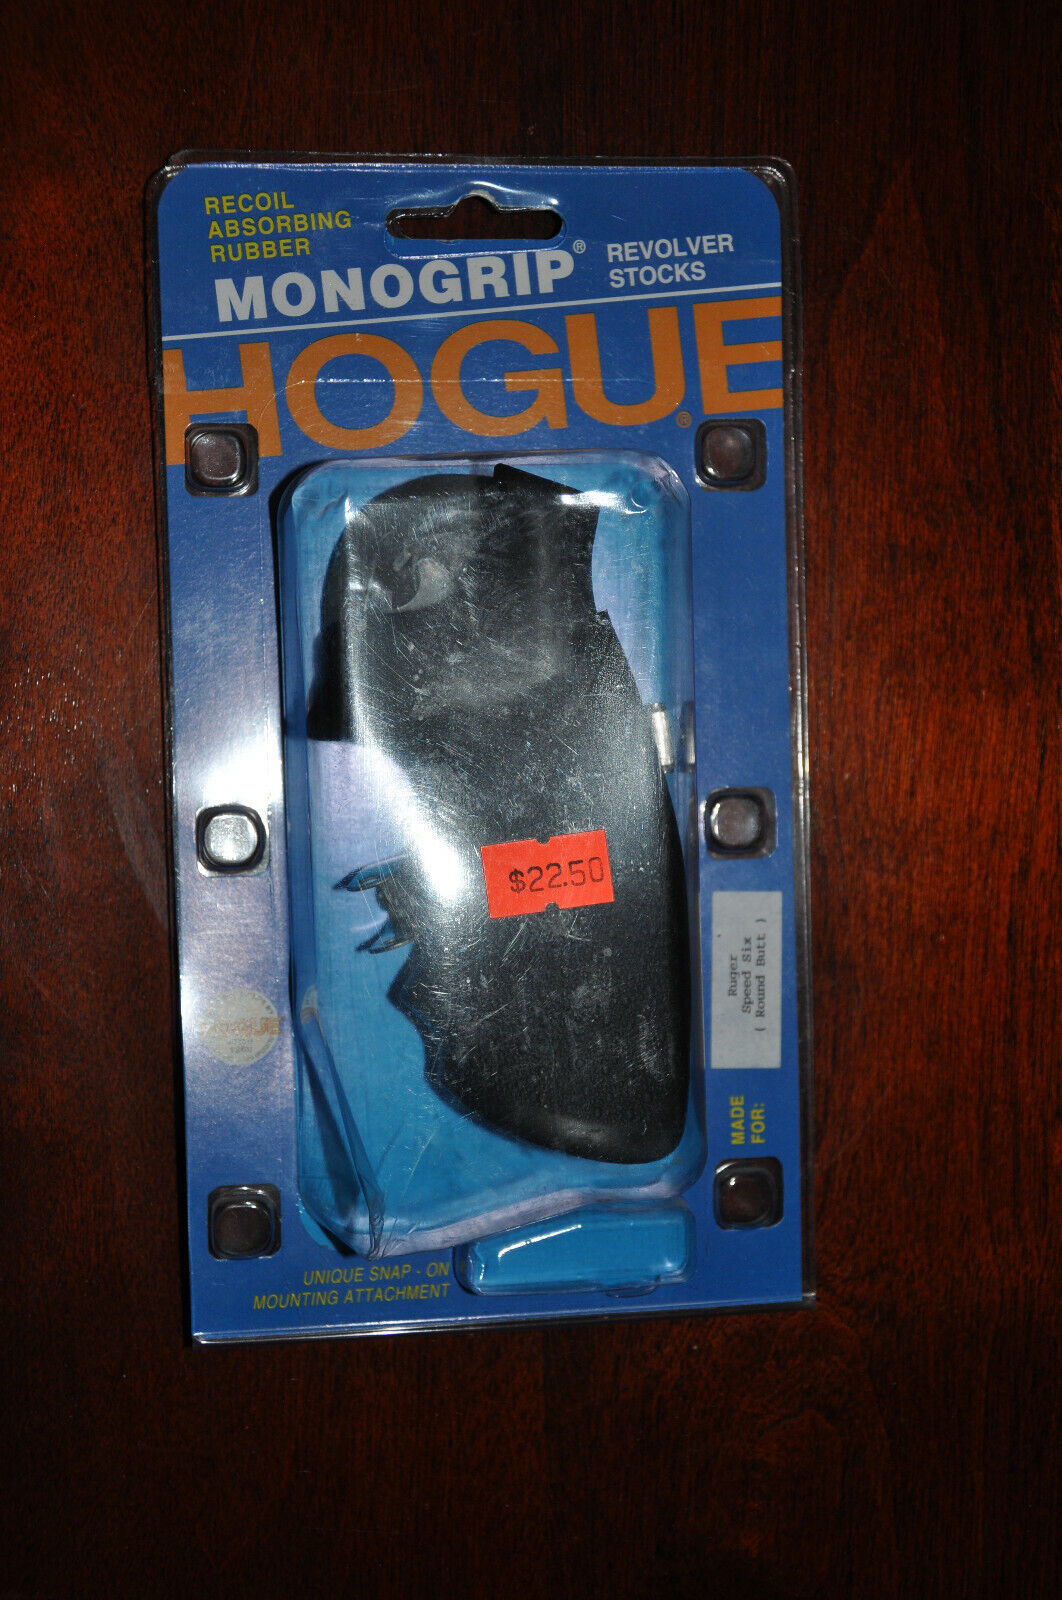 Hogue 88000 Ruger Speed-six Rubber Monogrip Black - $20.00